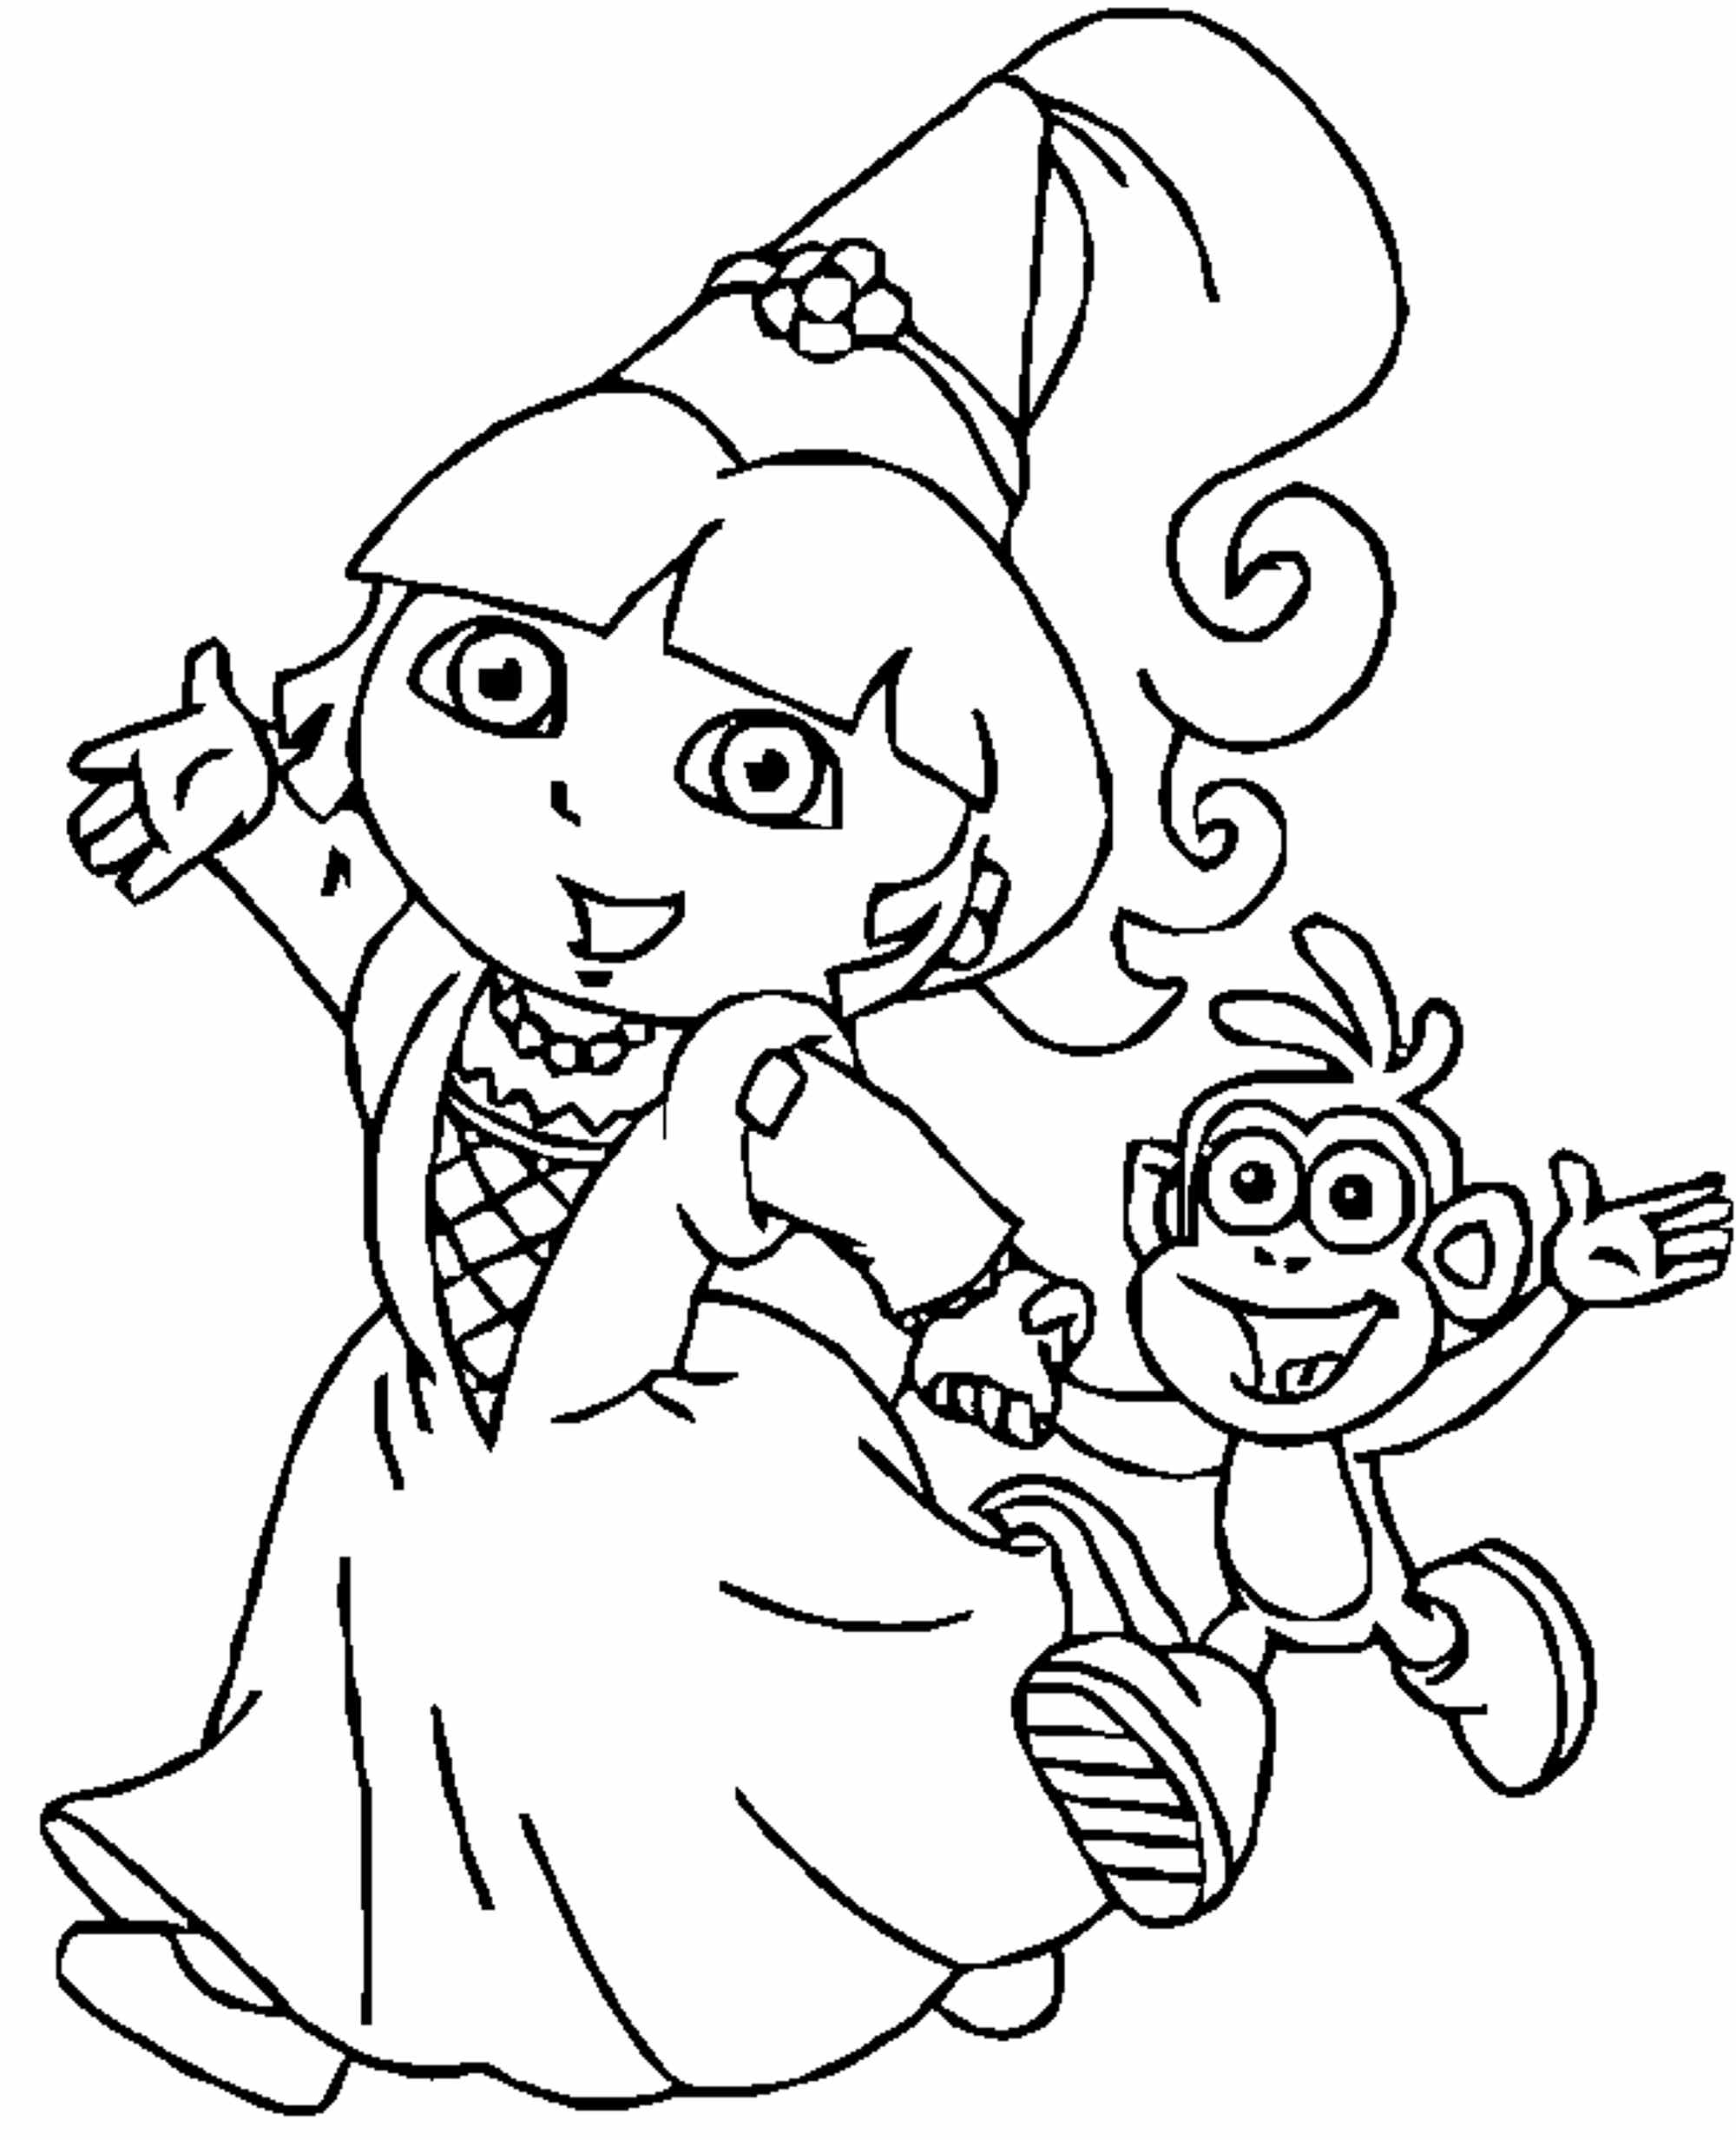 dora colouring pages dora and boots coloring pages to download and print for free dora colouring pages